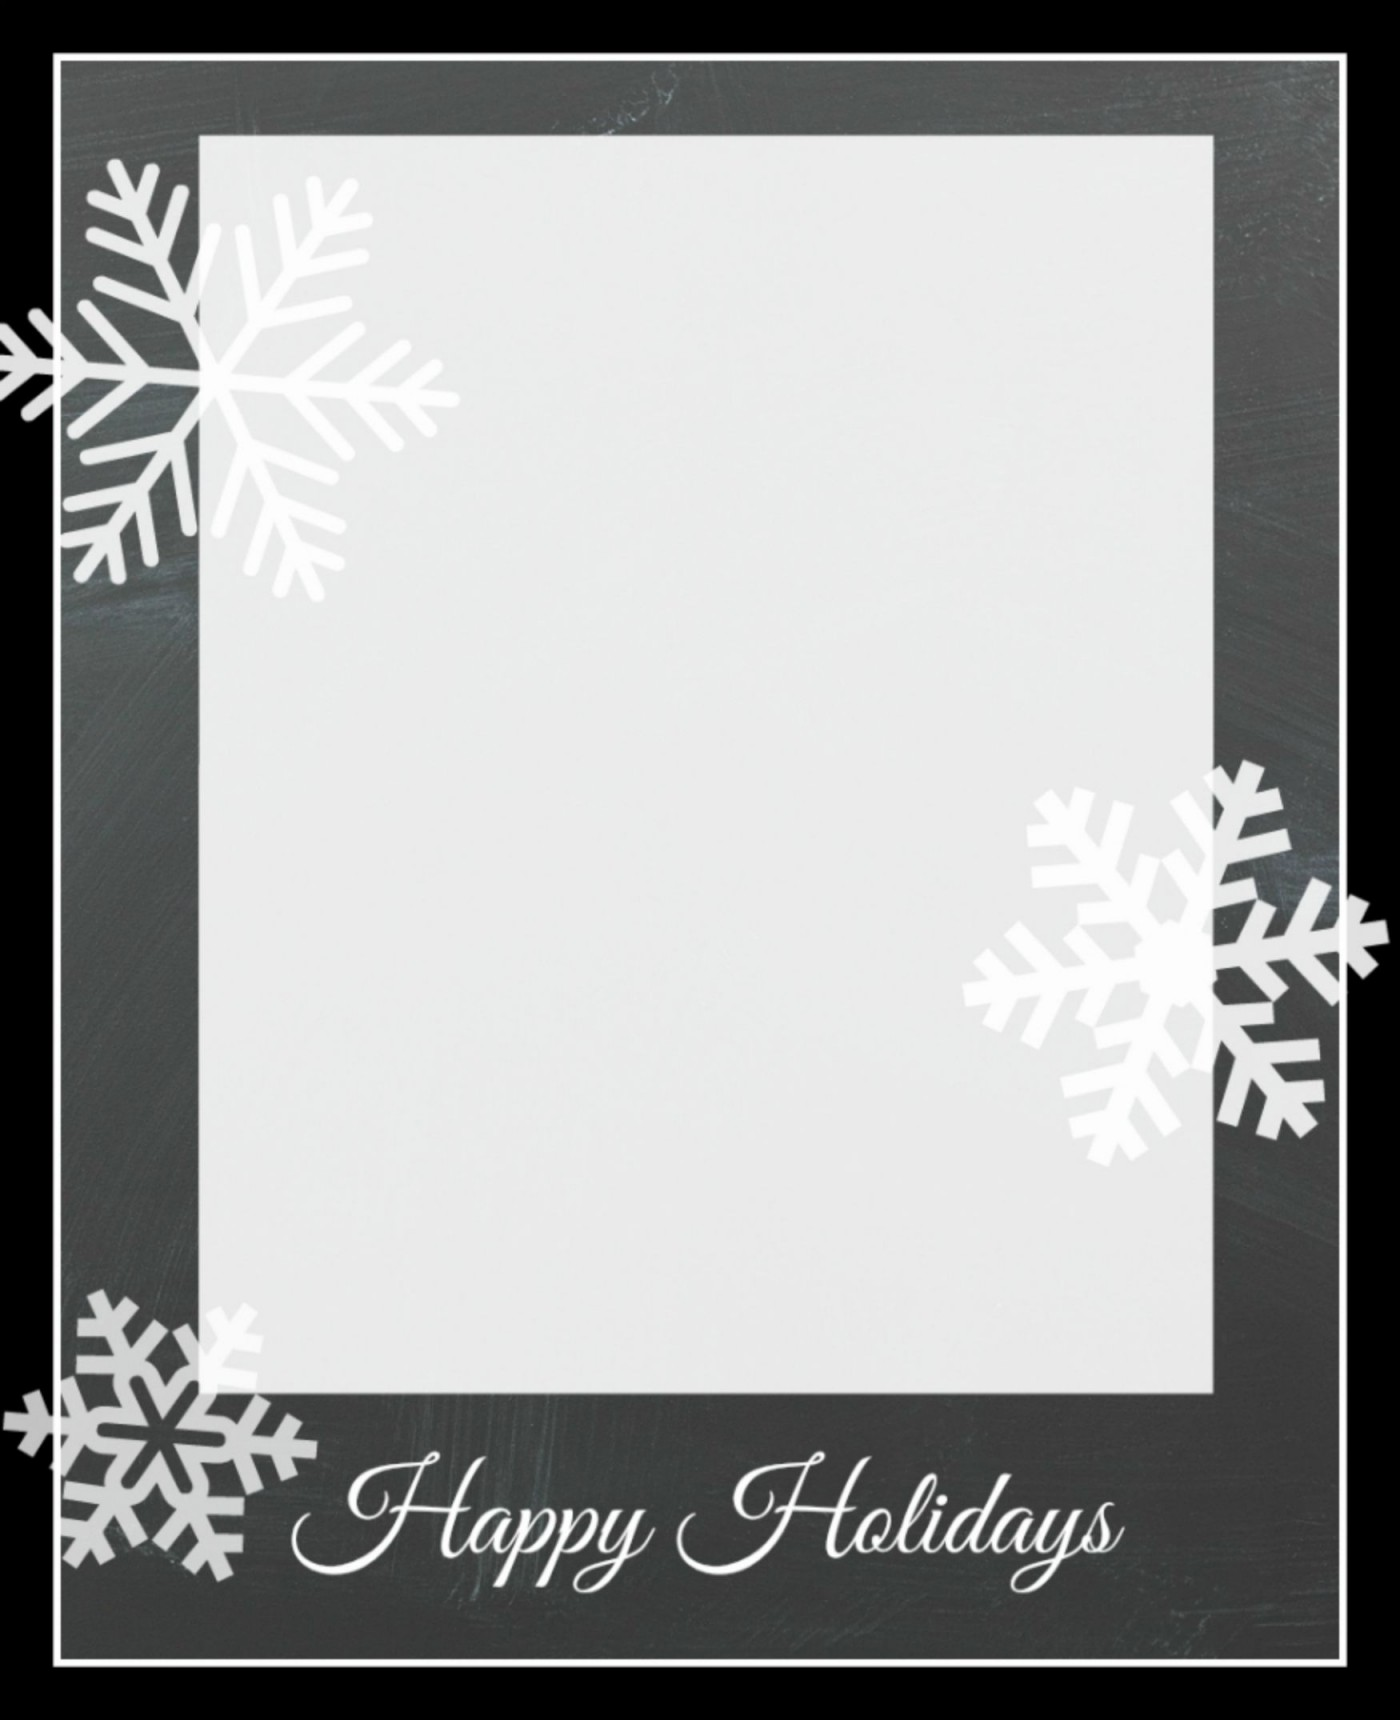 009 Unforgettable Free Download Holiday Card Template Photo 1400